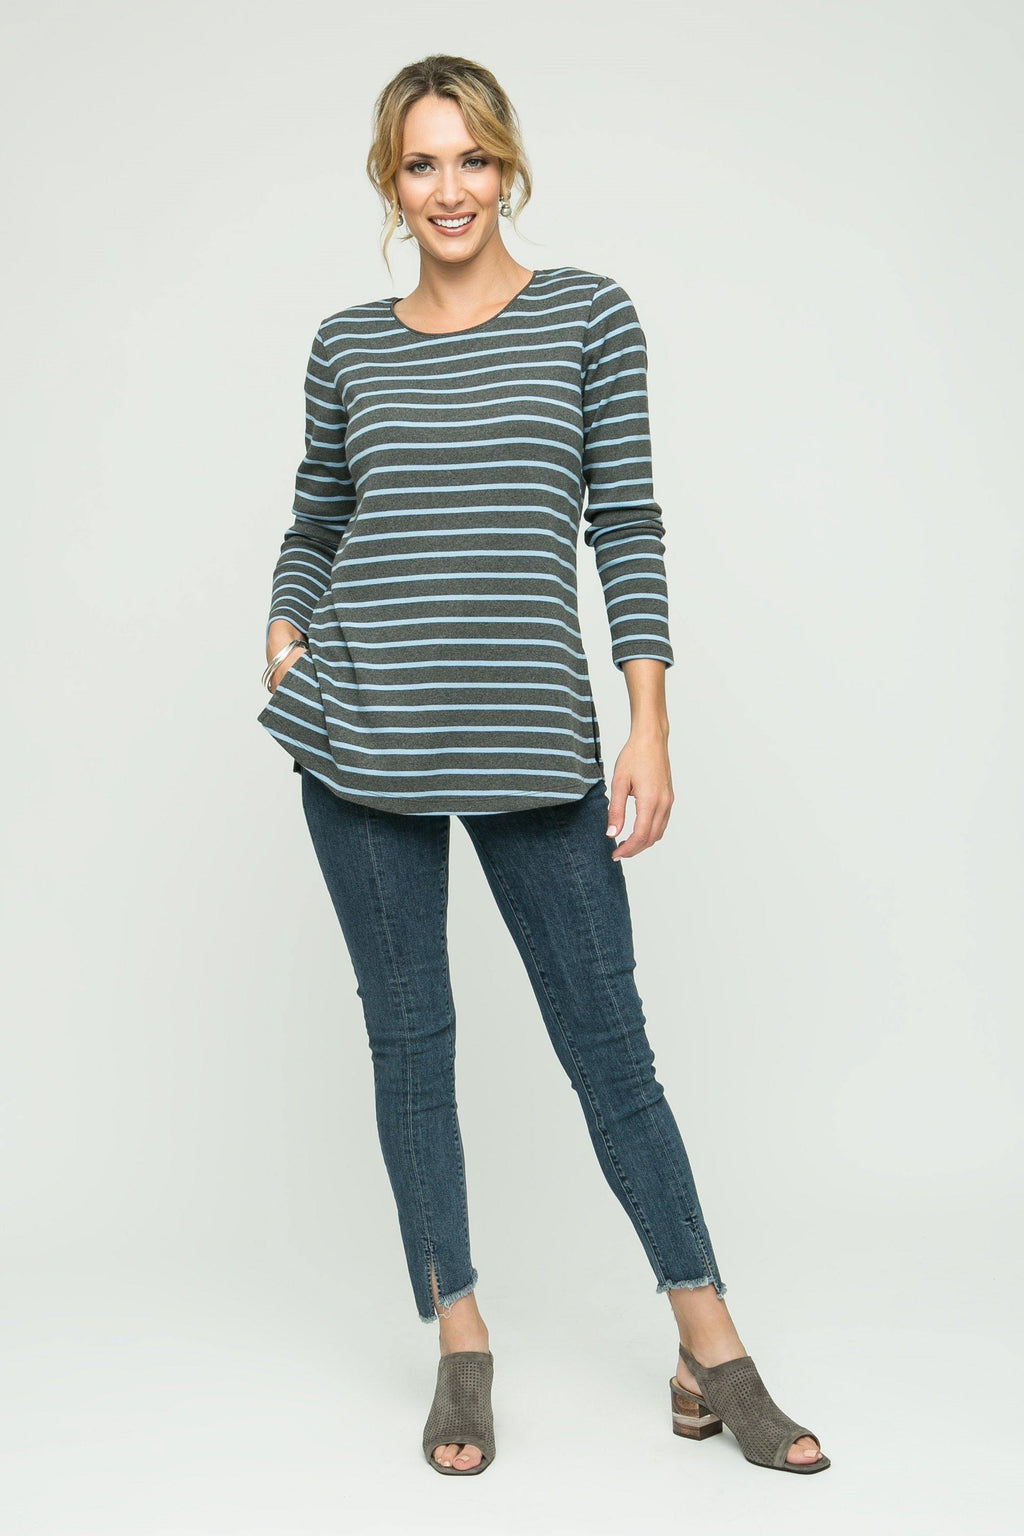 Stingray Skinny Jean with Front Slit - PARKER SMITH - Bottoms - Jeans